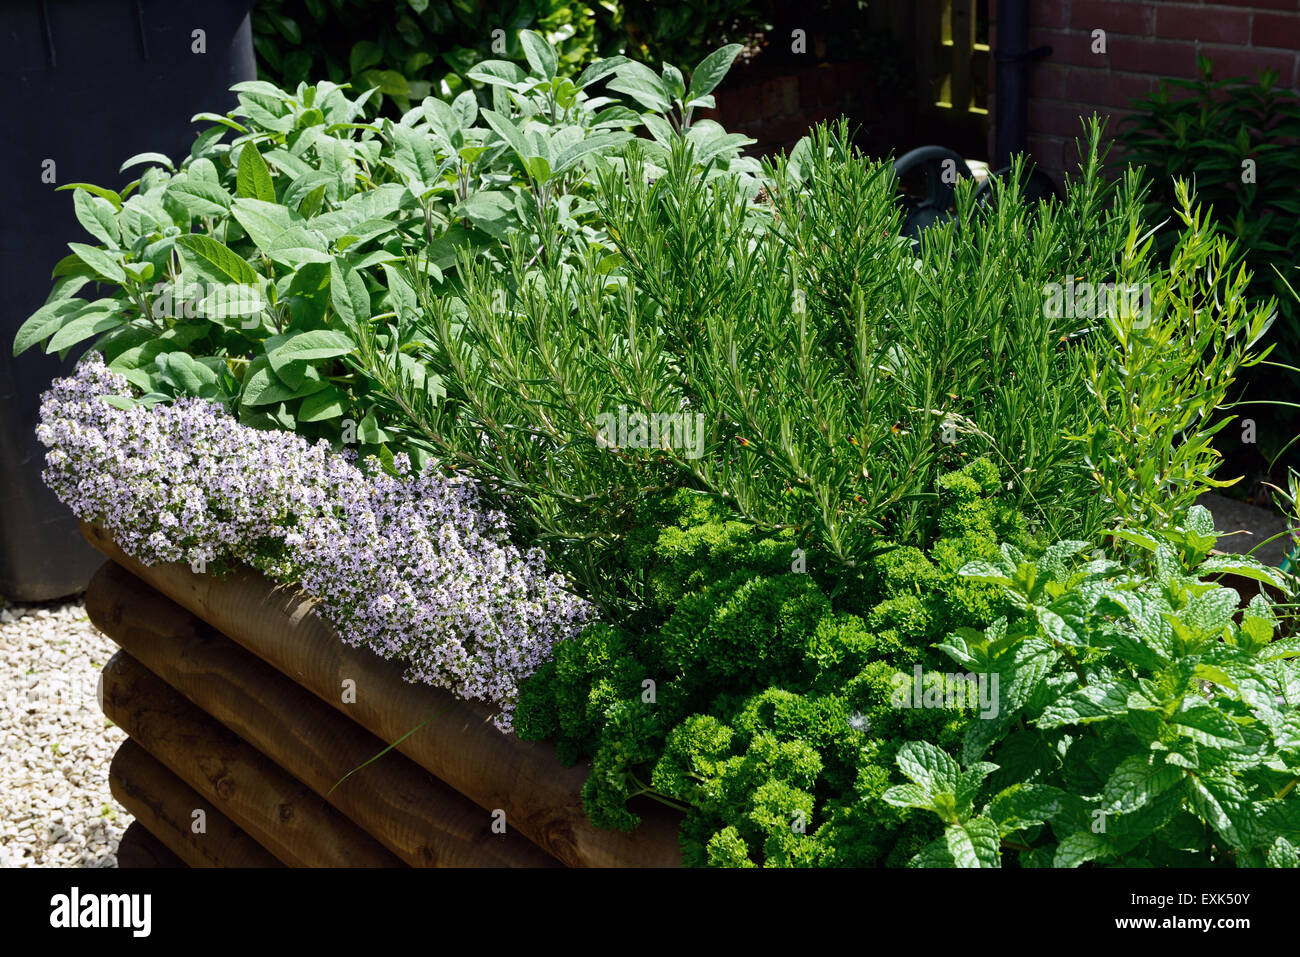 Raised Bed For Culinary Herbs Mint Curly Leaf Parsley Rosemary